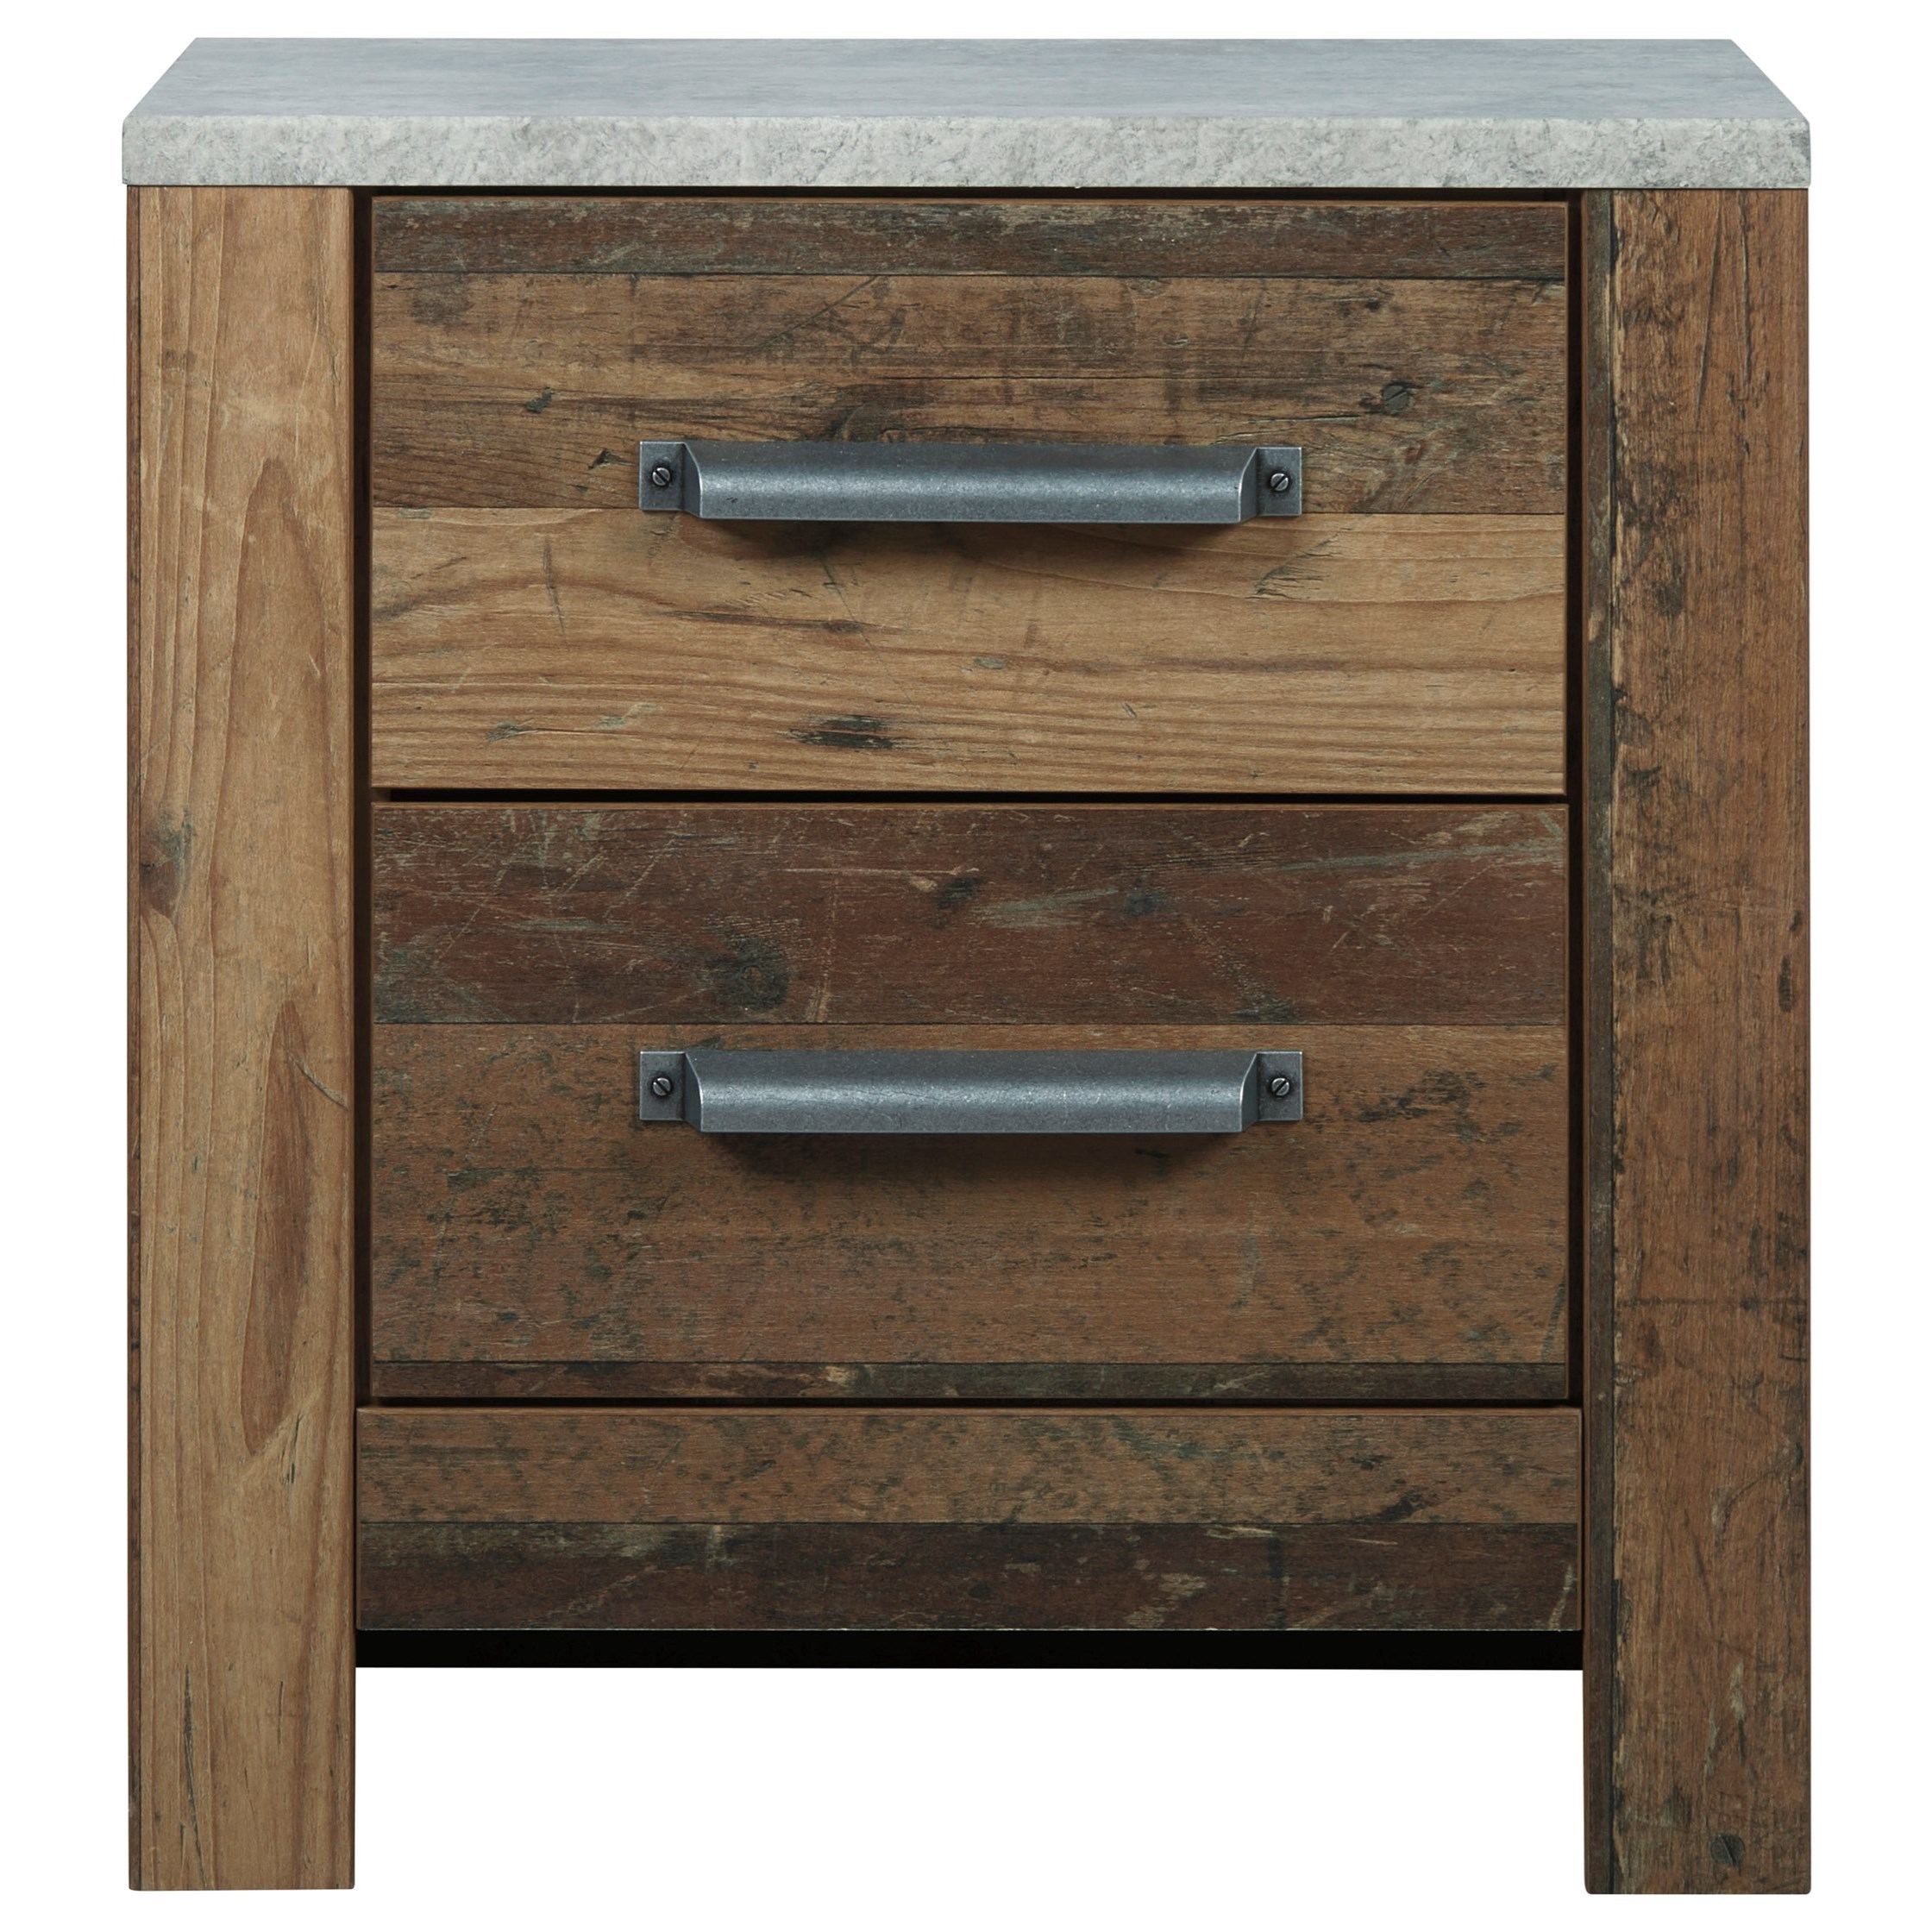 Chadbrook 2-Drawer Nightstand by Benchcraft at Northeast Factory Direct